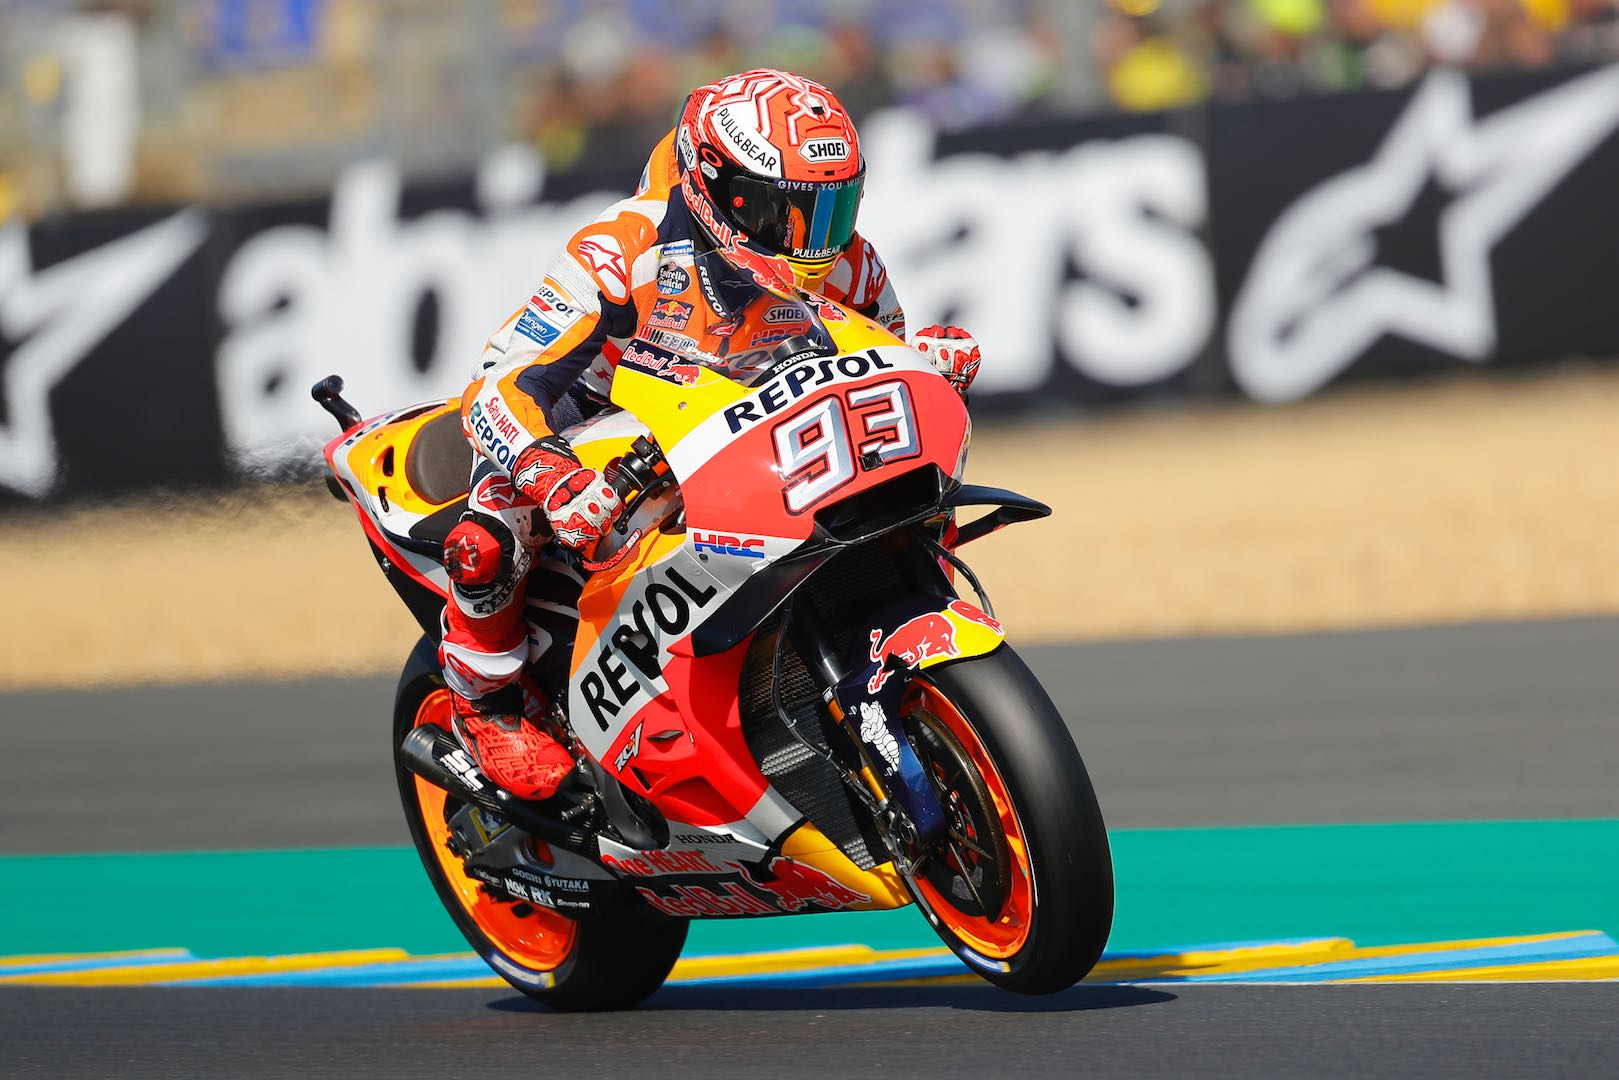 2019 Qatar MotoGP Preview | Facts, Stats & Quotes